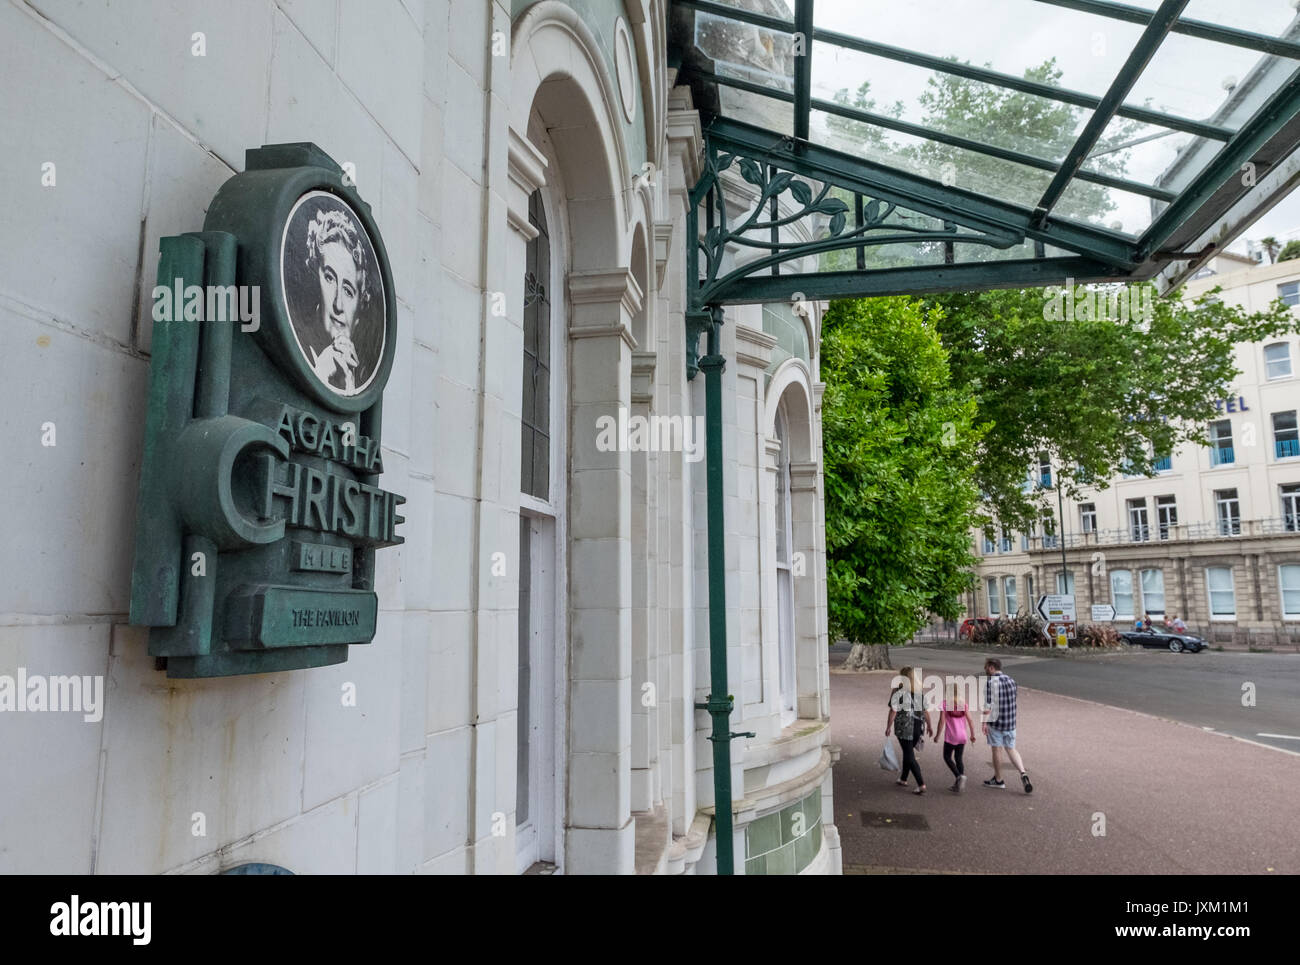 Tourist pass an Agatha Christie Mile sign on the Pavilion in Torquay, Devon, UK - Stock Image